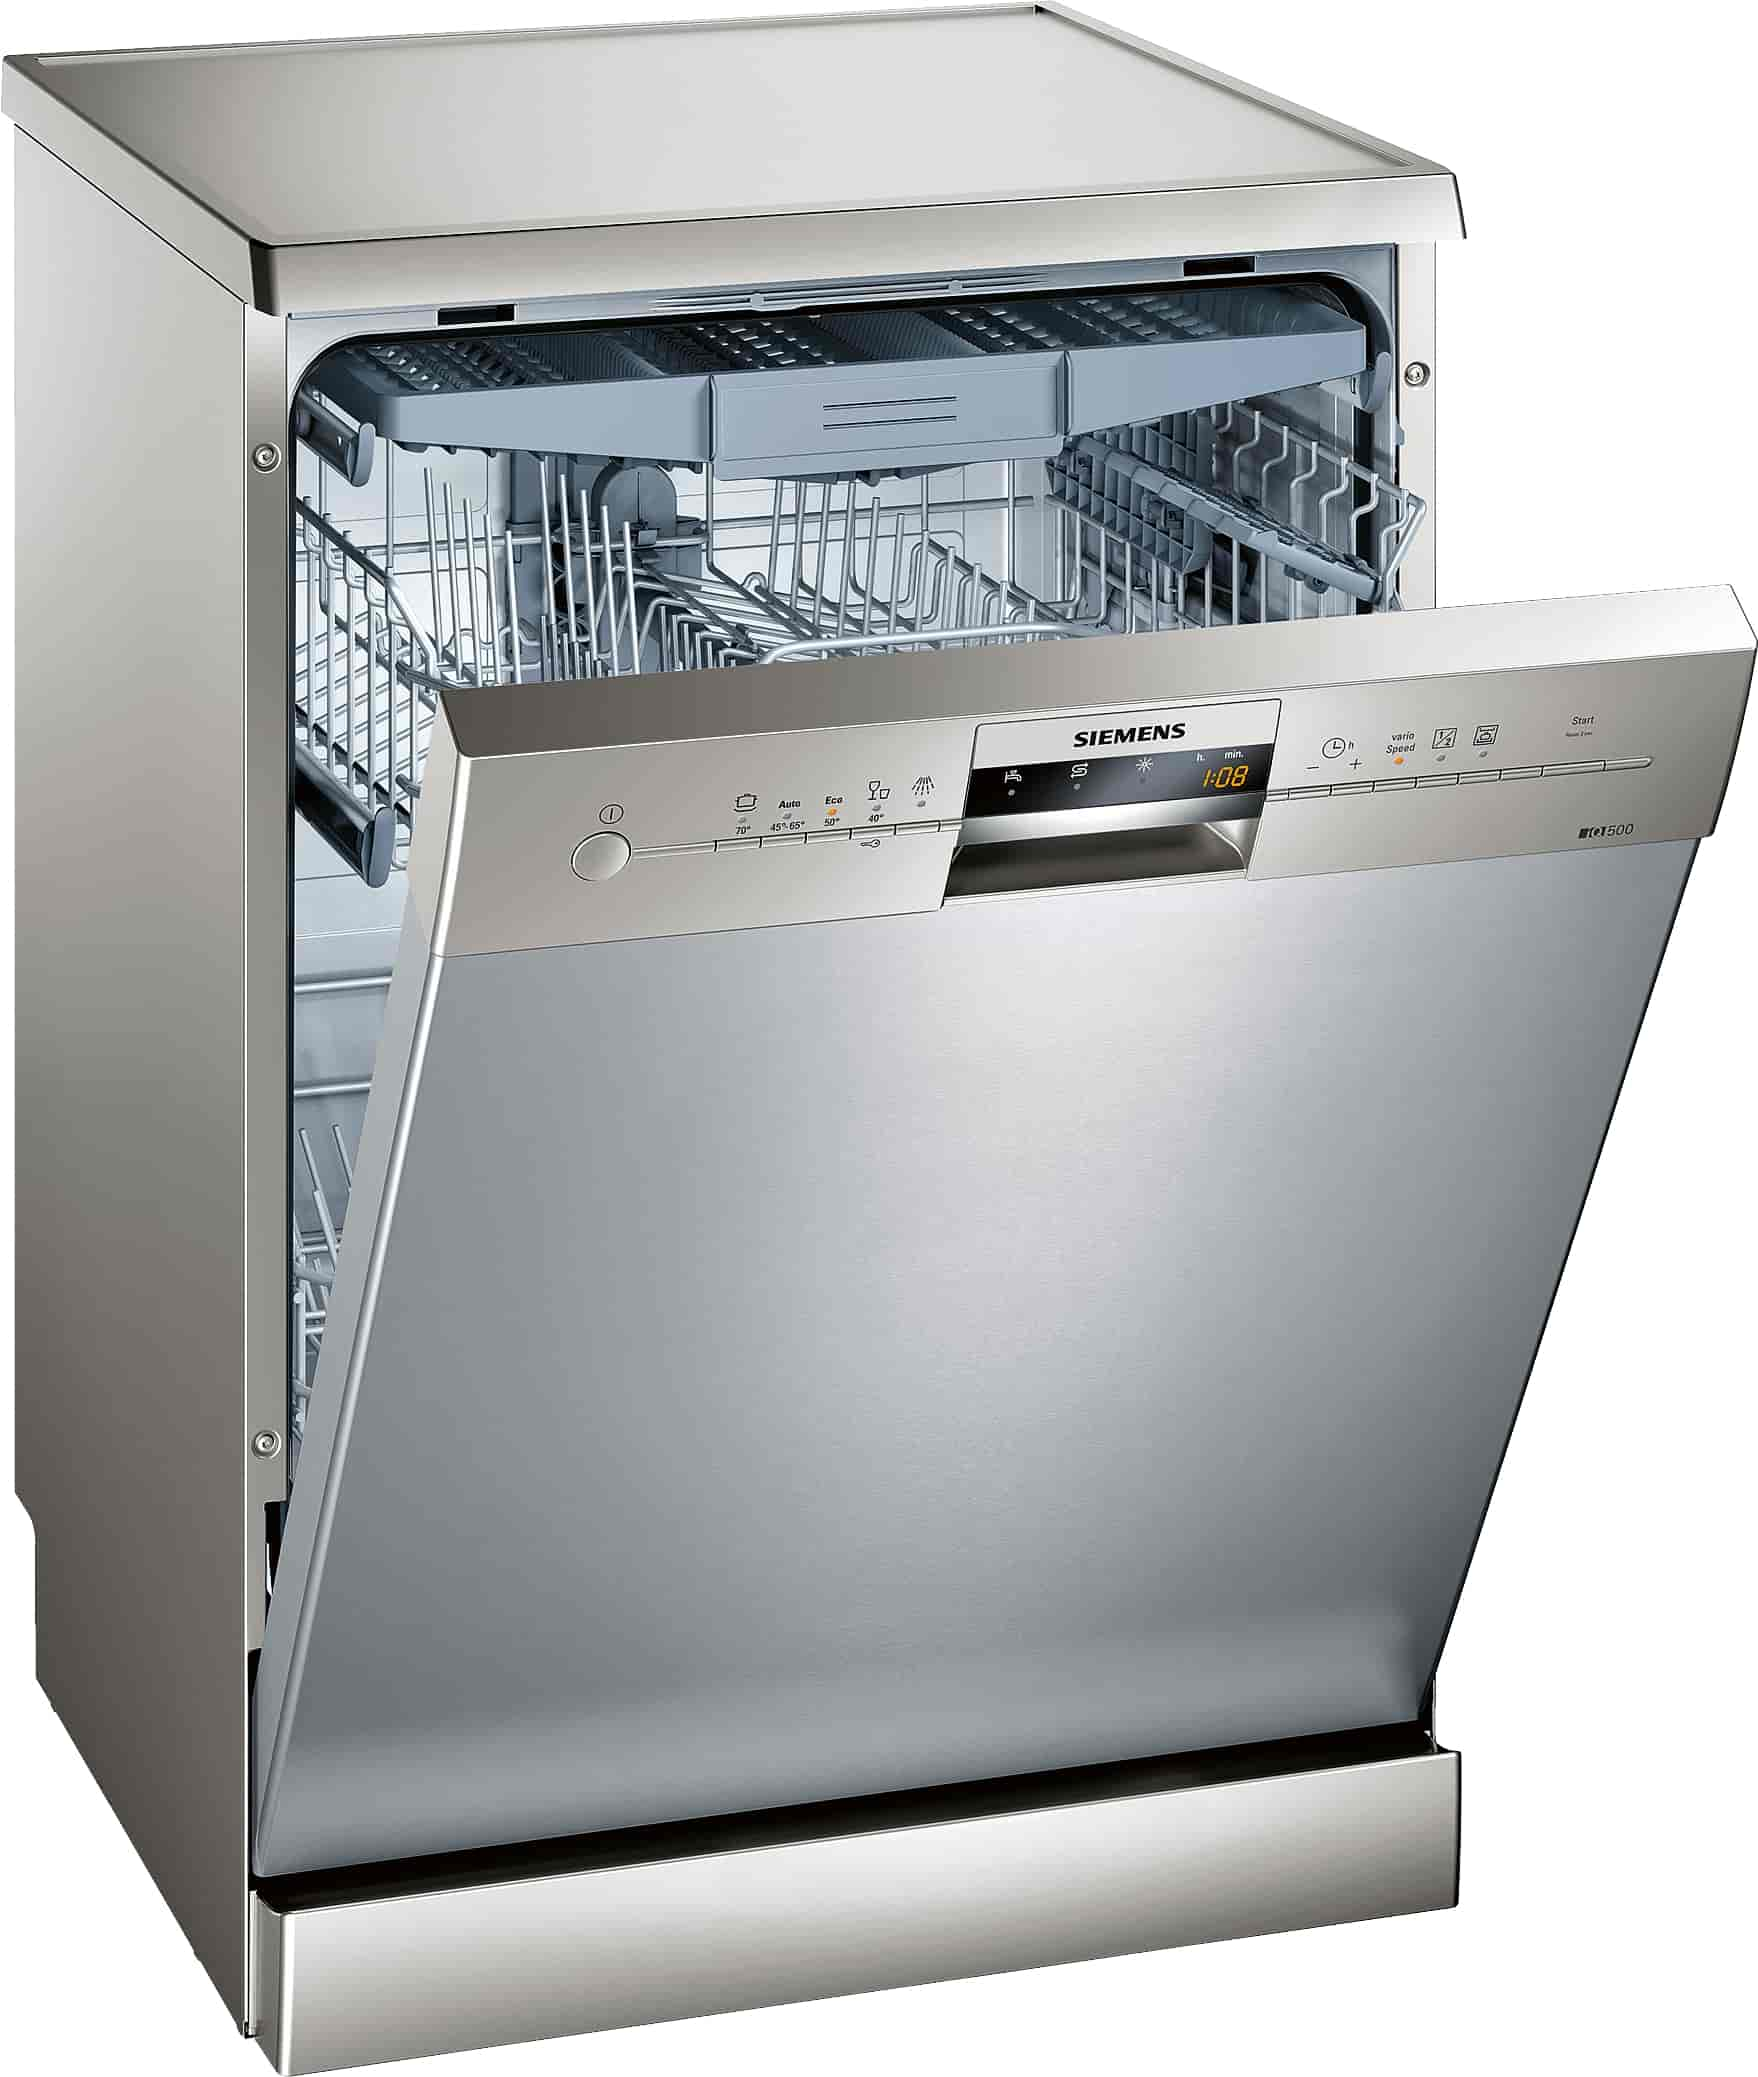 Uncategorized Siemens Kitchen Appliances Reviews buy siemens free standing dishwasher stainless steel sn25l882eu sn25l882eu